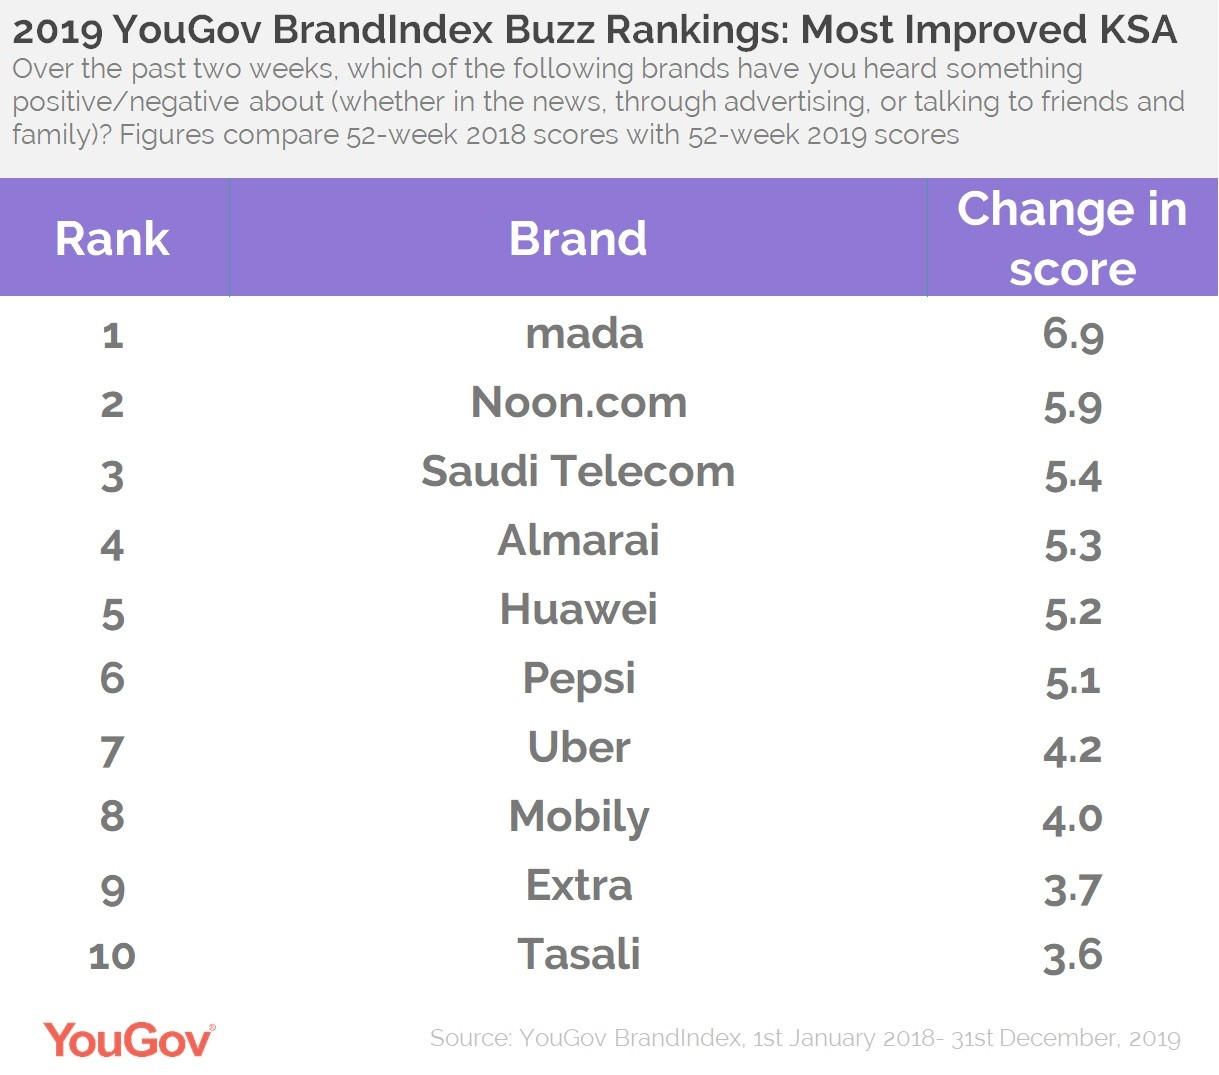 Buzz Rankings KSA- Top Improvers